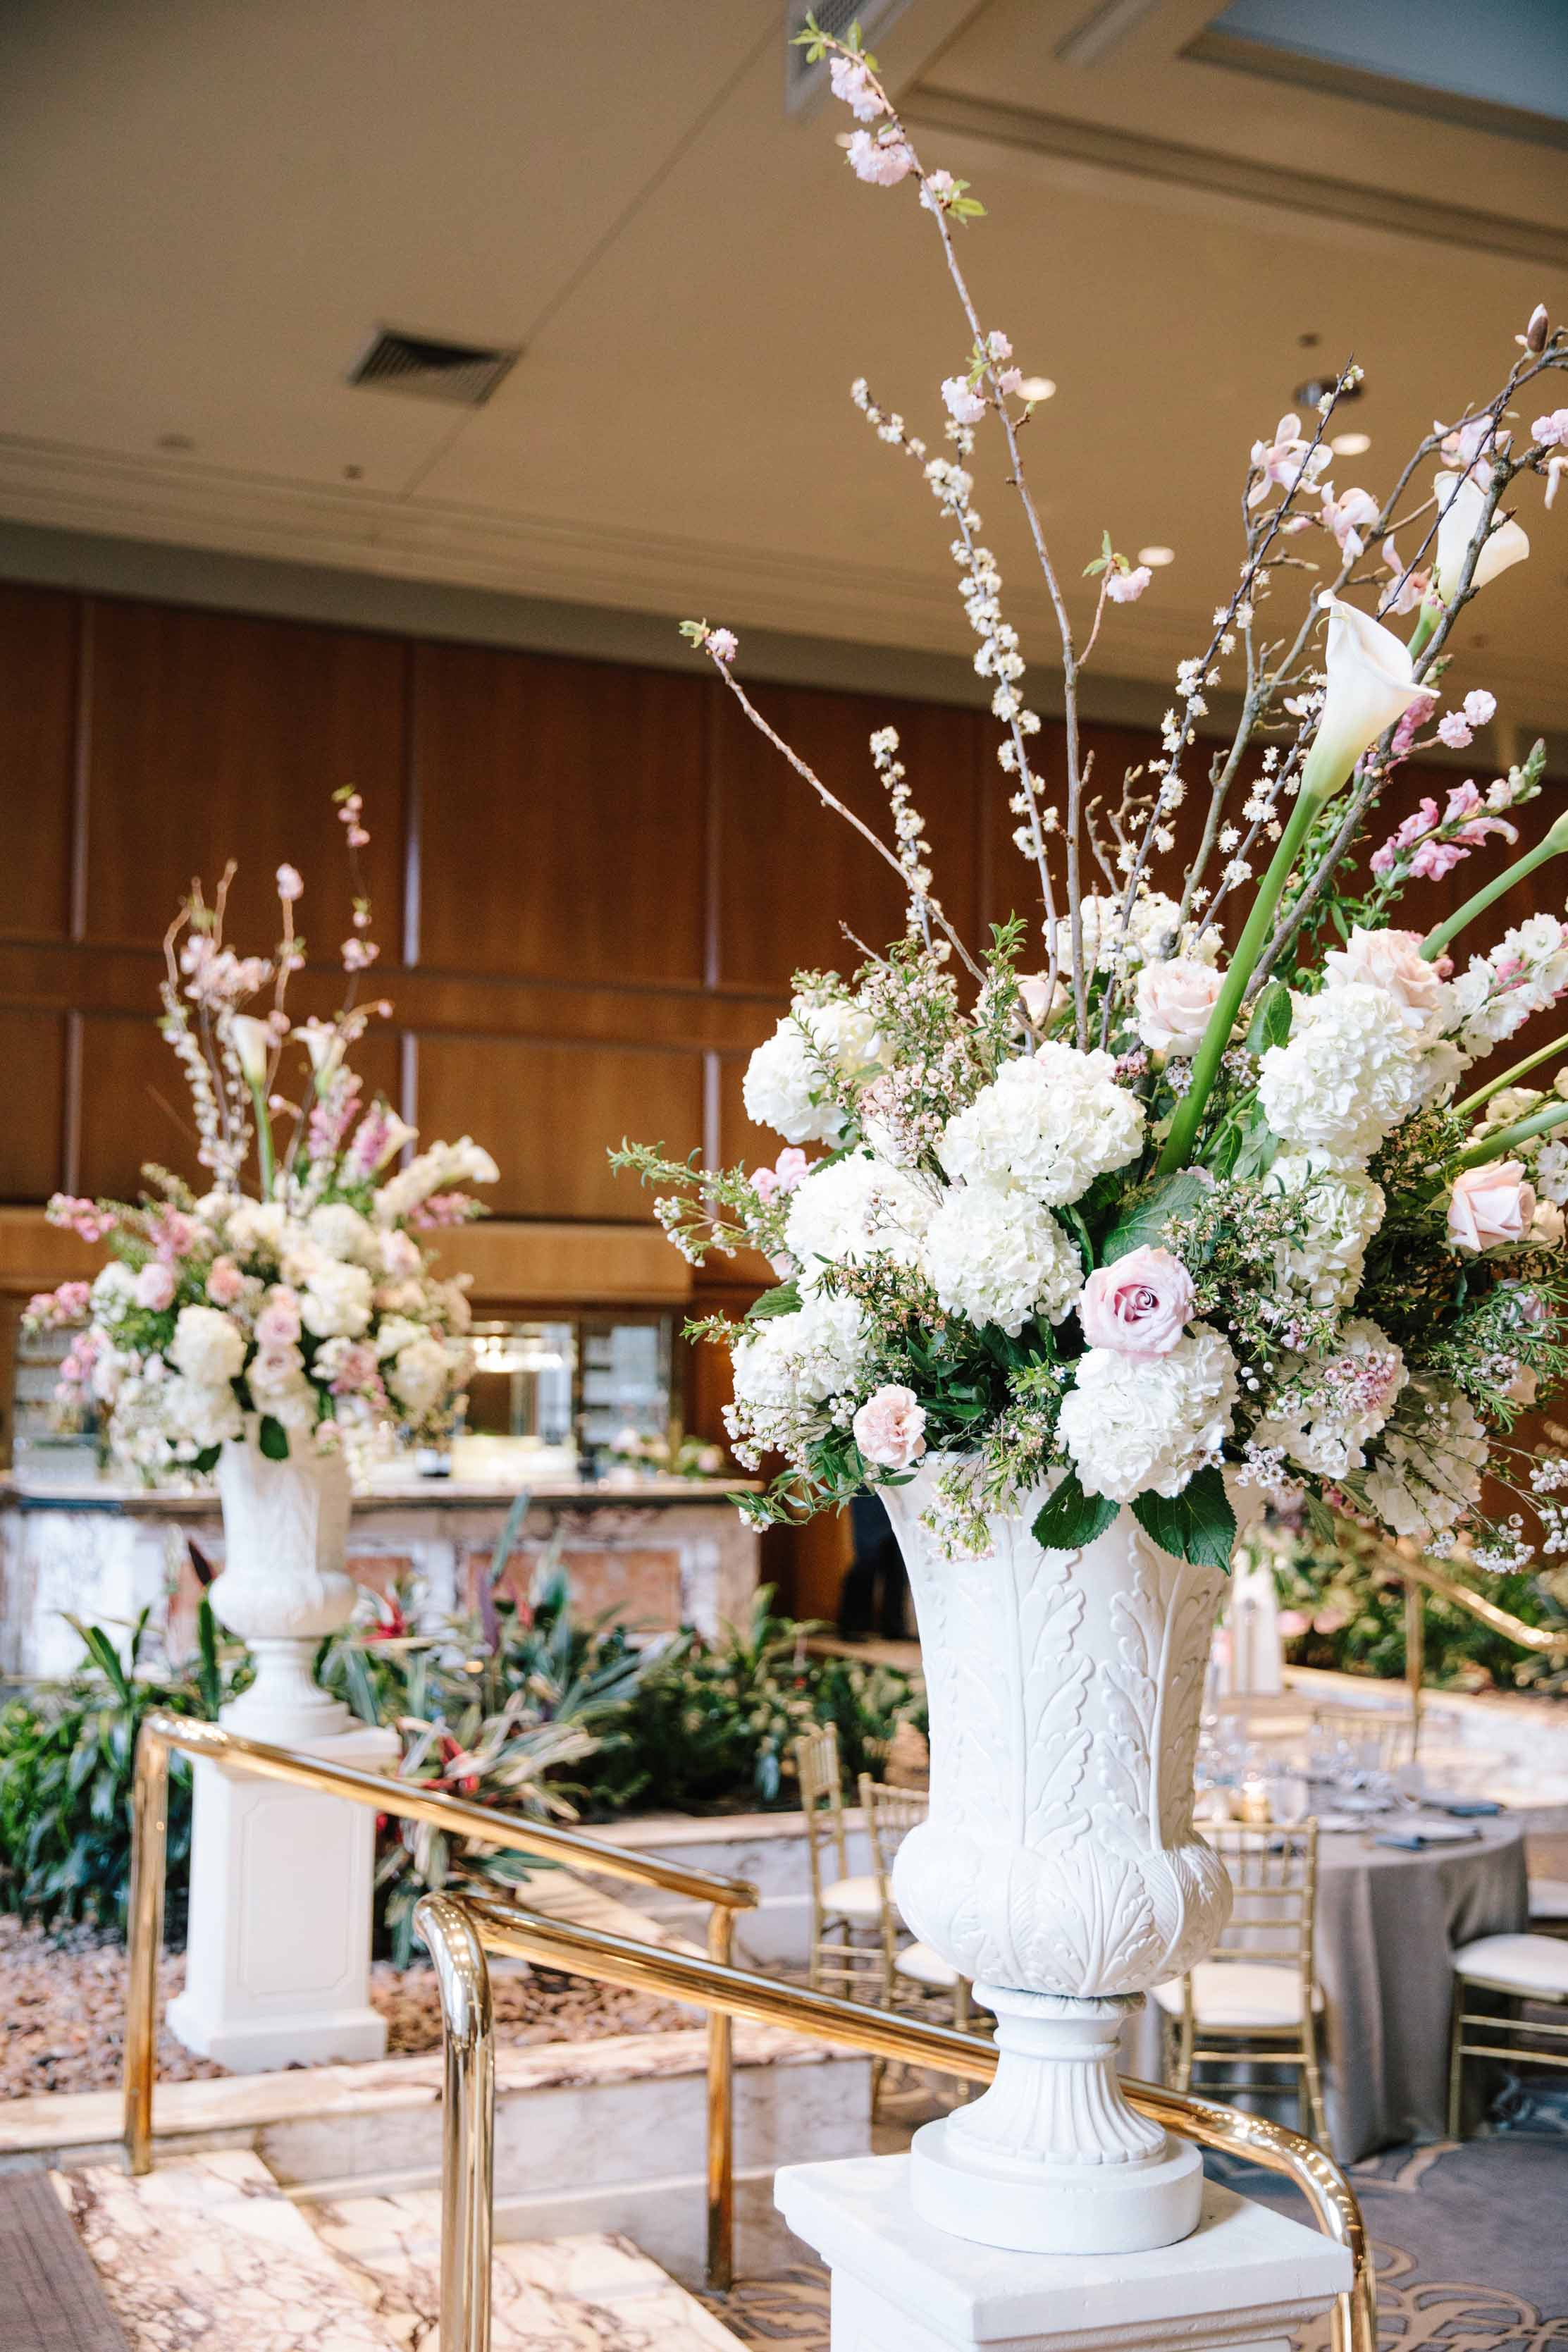 Tall white urns filled with spring garden flowers, magnolia branches, and calla lilies